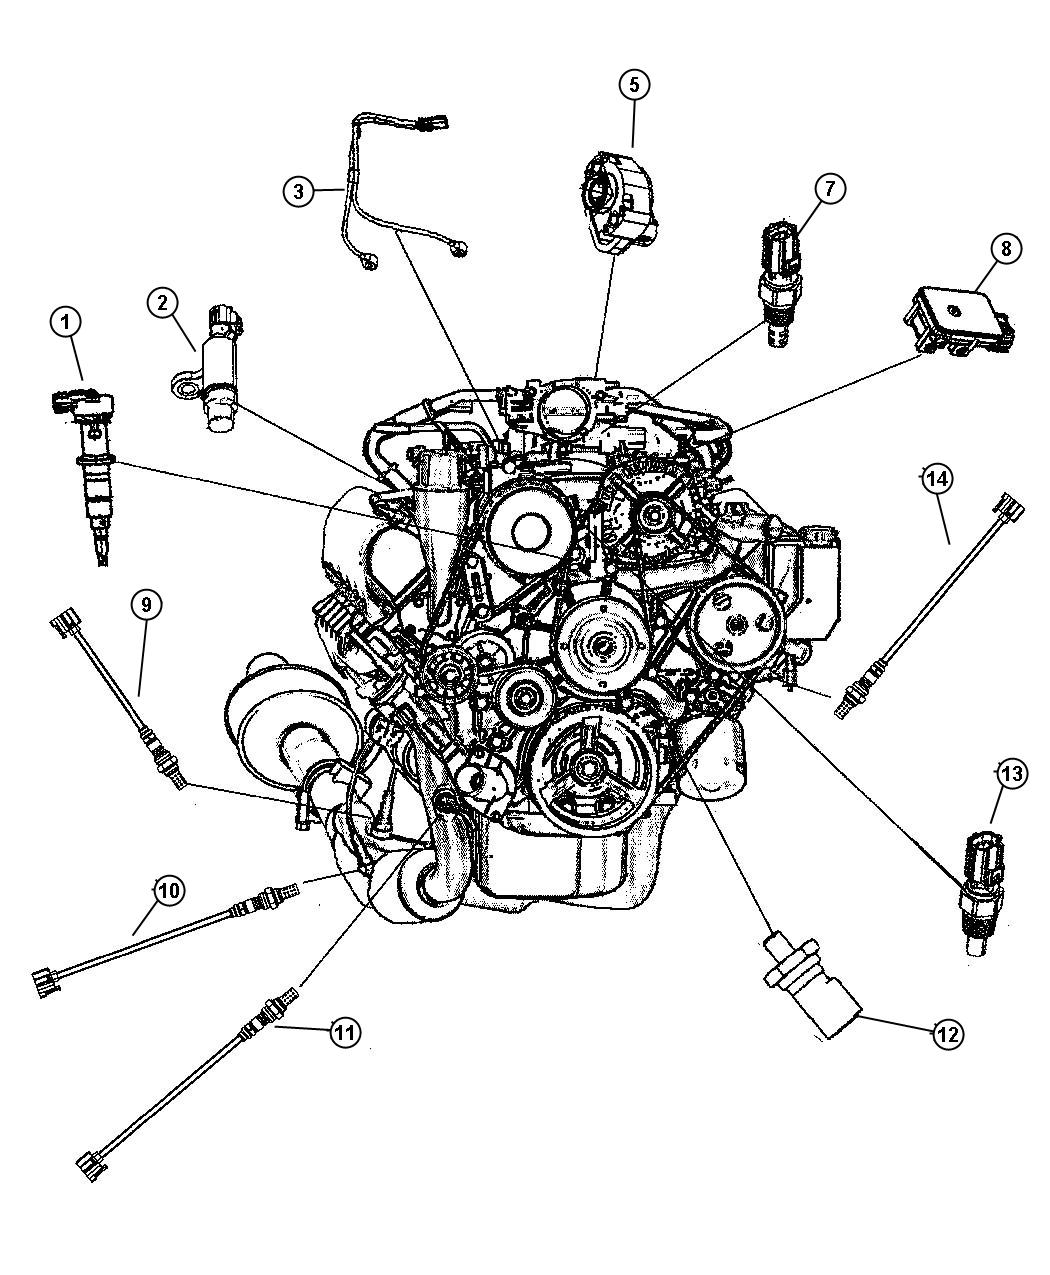 Chrysler 2 7l Engine Wiring Diagram on pt cruiser 2 4 engine diagram